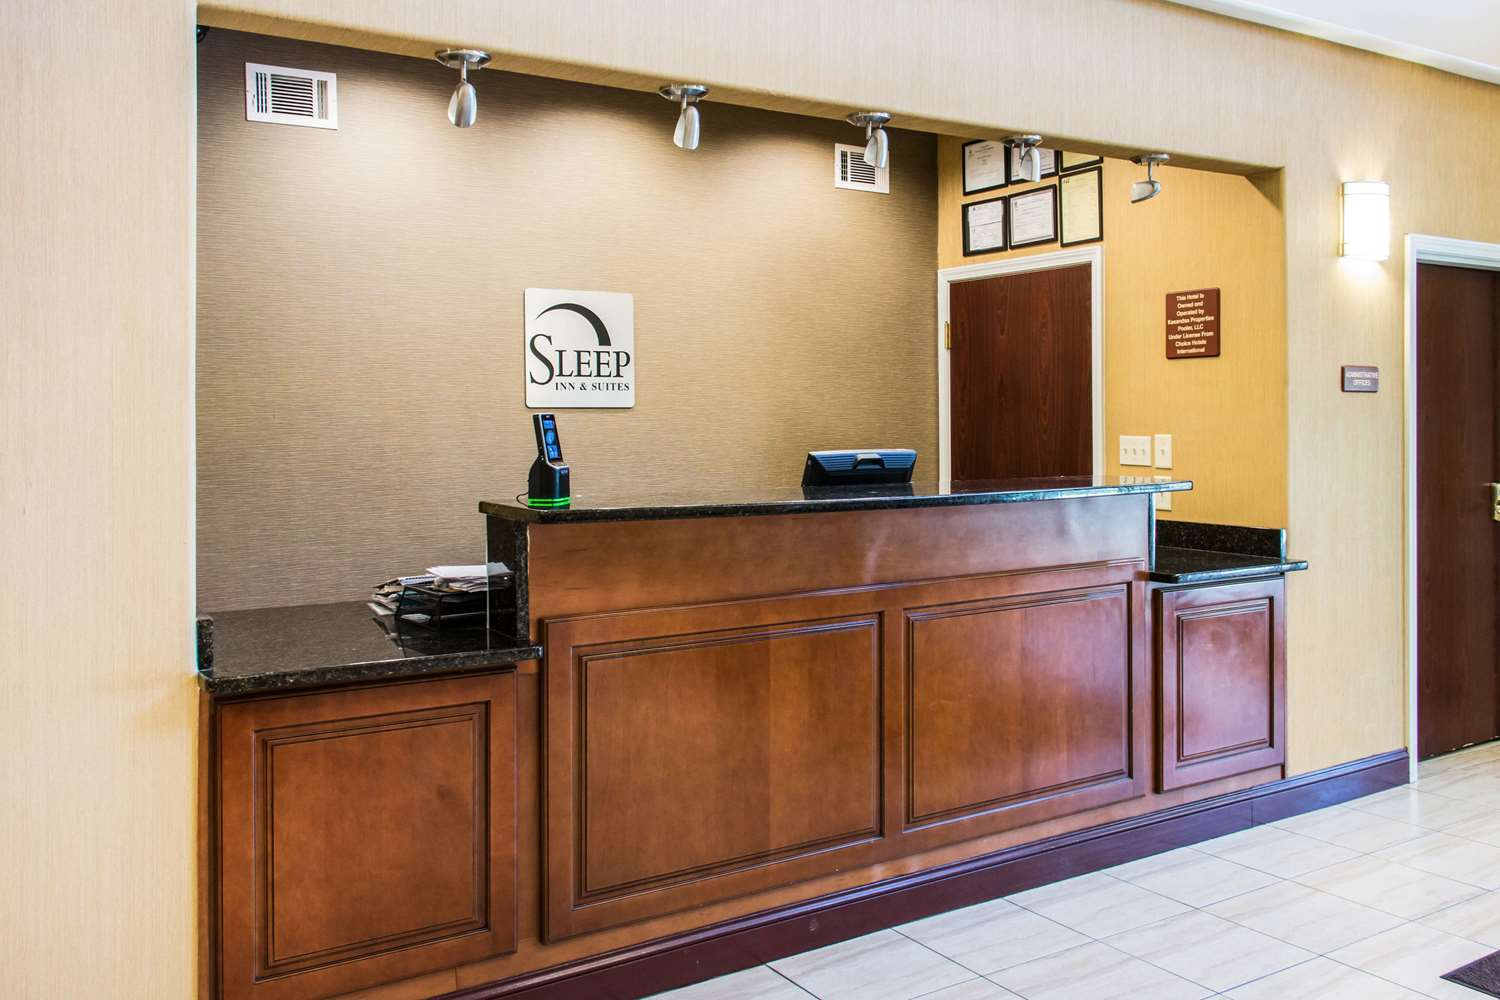 Lobby - Sleep Inn & Suites Pooler